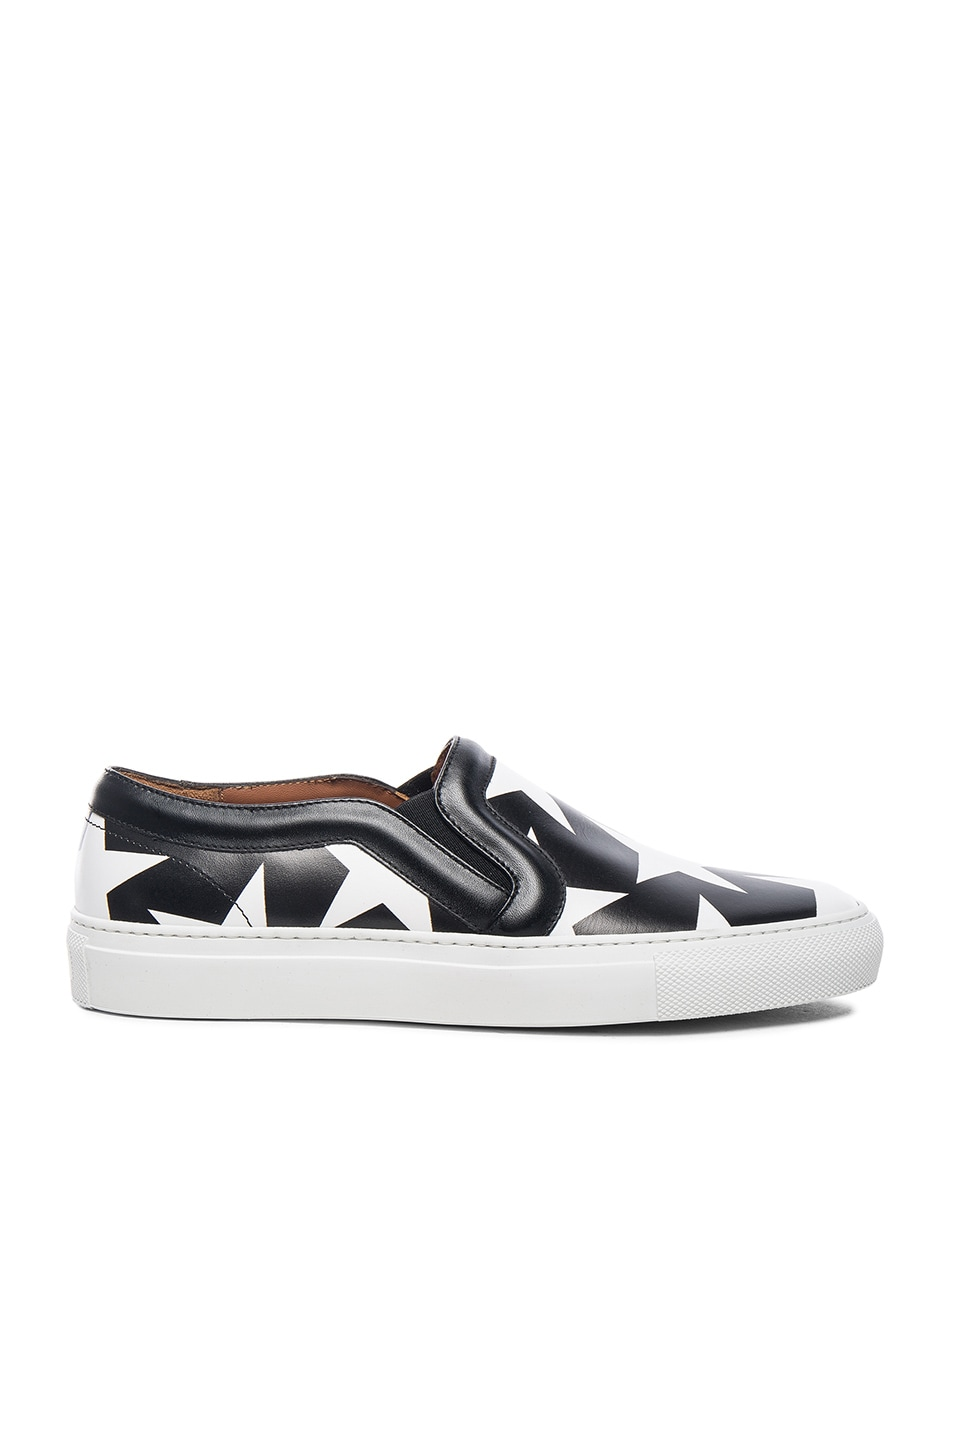 Image 2 of Givenchy Star Print Skate Sneakers in Black & White